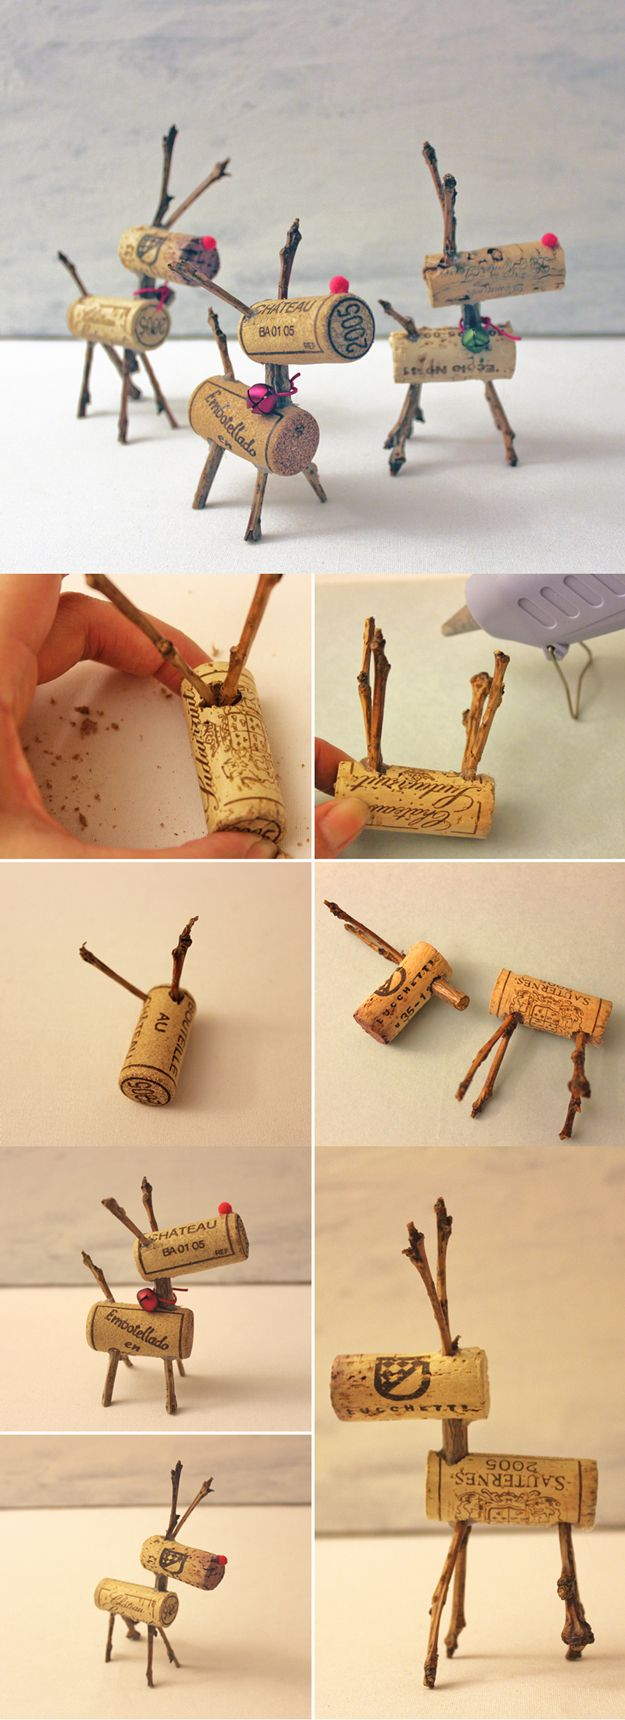 Easy Christmas Decor Ideas: Reindeer Corks | Easy DIY Wine Cork Decor Project by DIY Ready at http://diyready.com/more-wine-cork-crafts-ideas/: